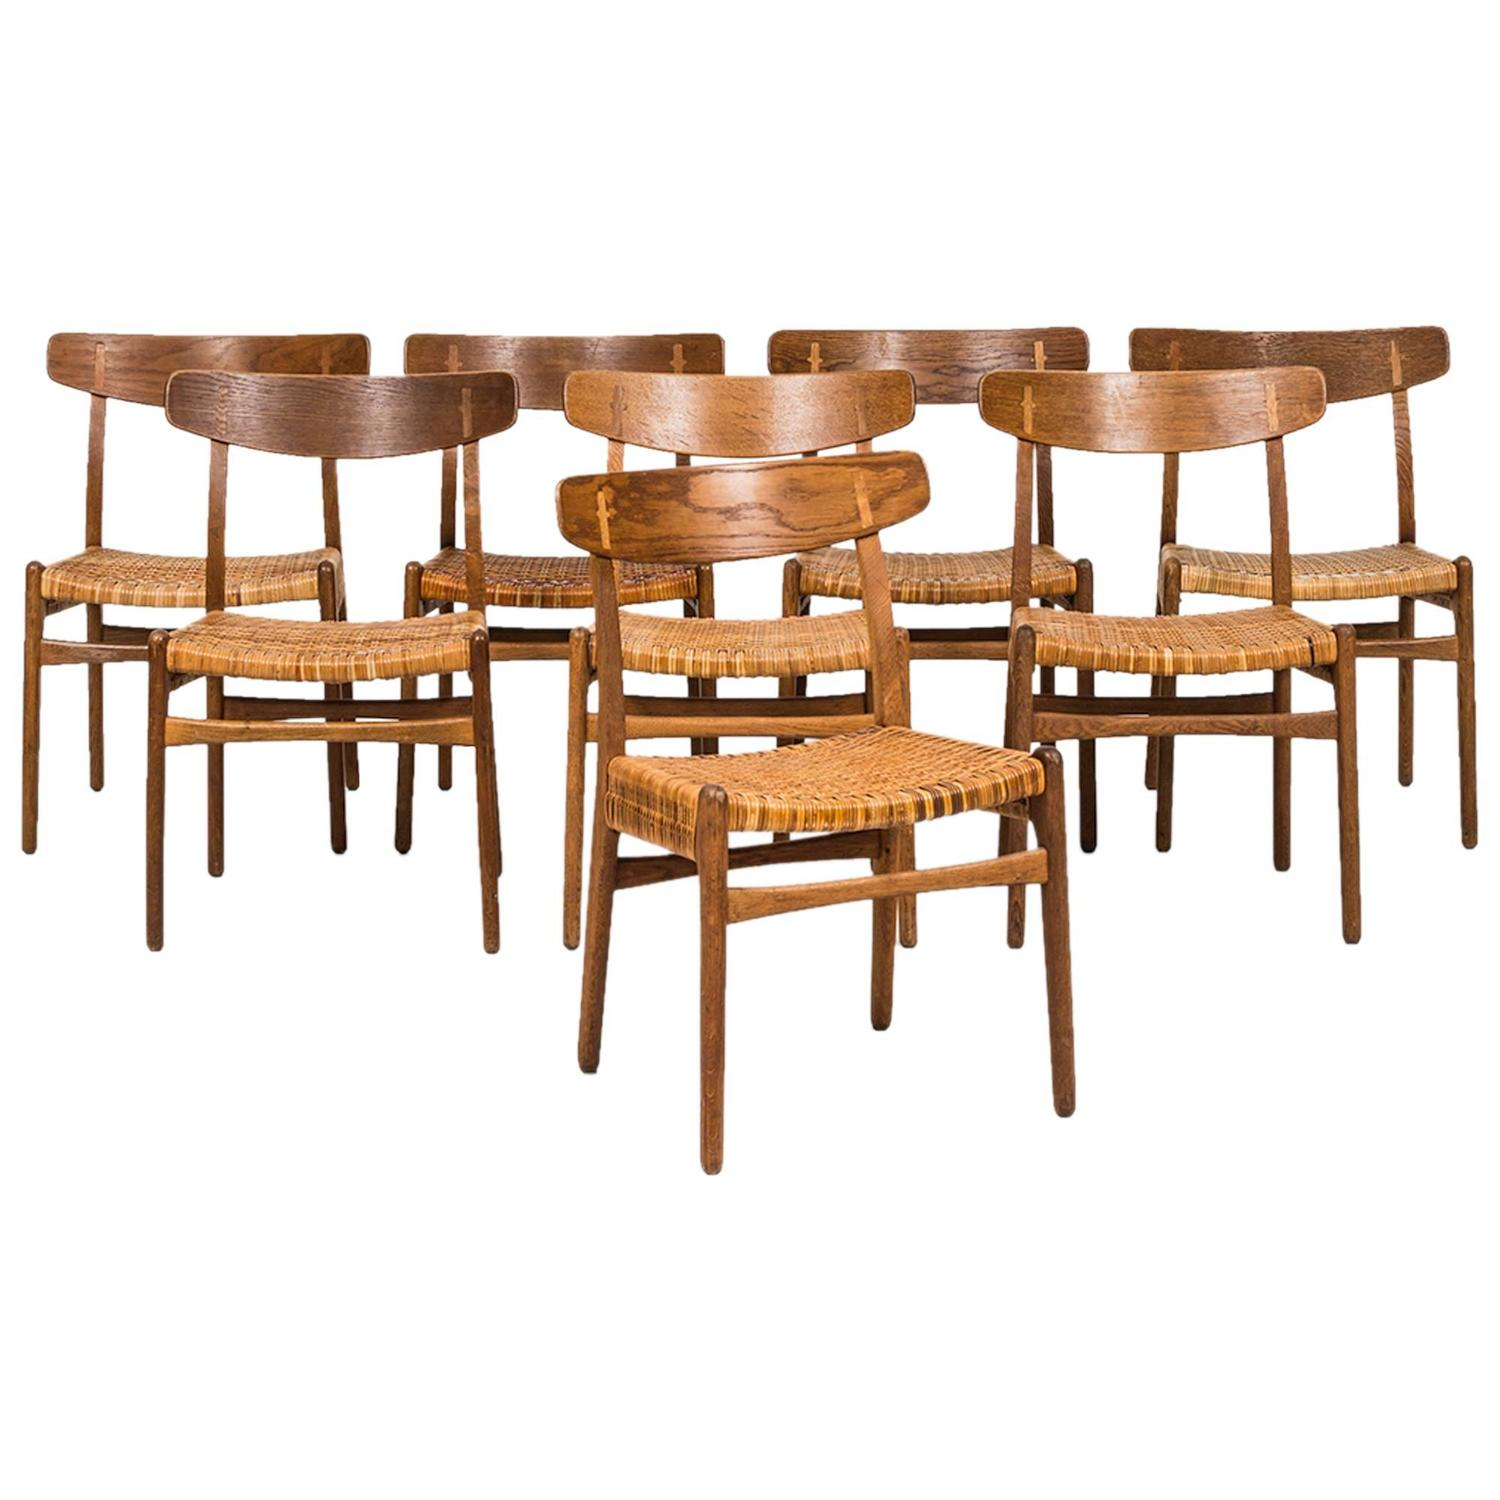 Hans Wegner Dining Chairs Model CH 23 by Carl Hansen and Son in